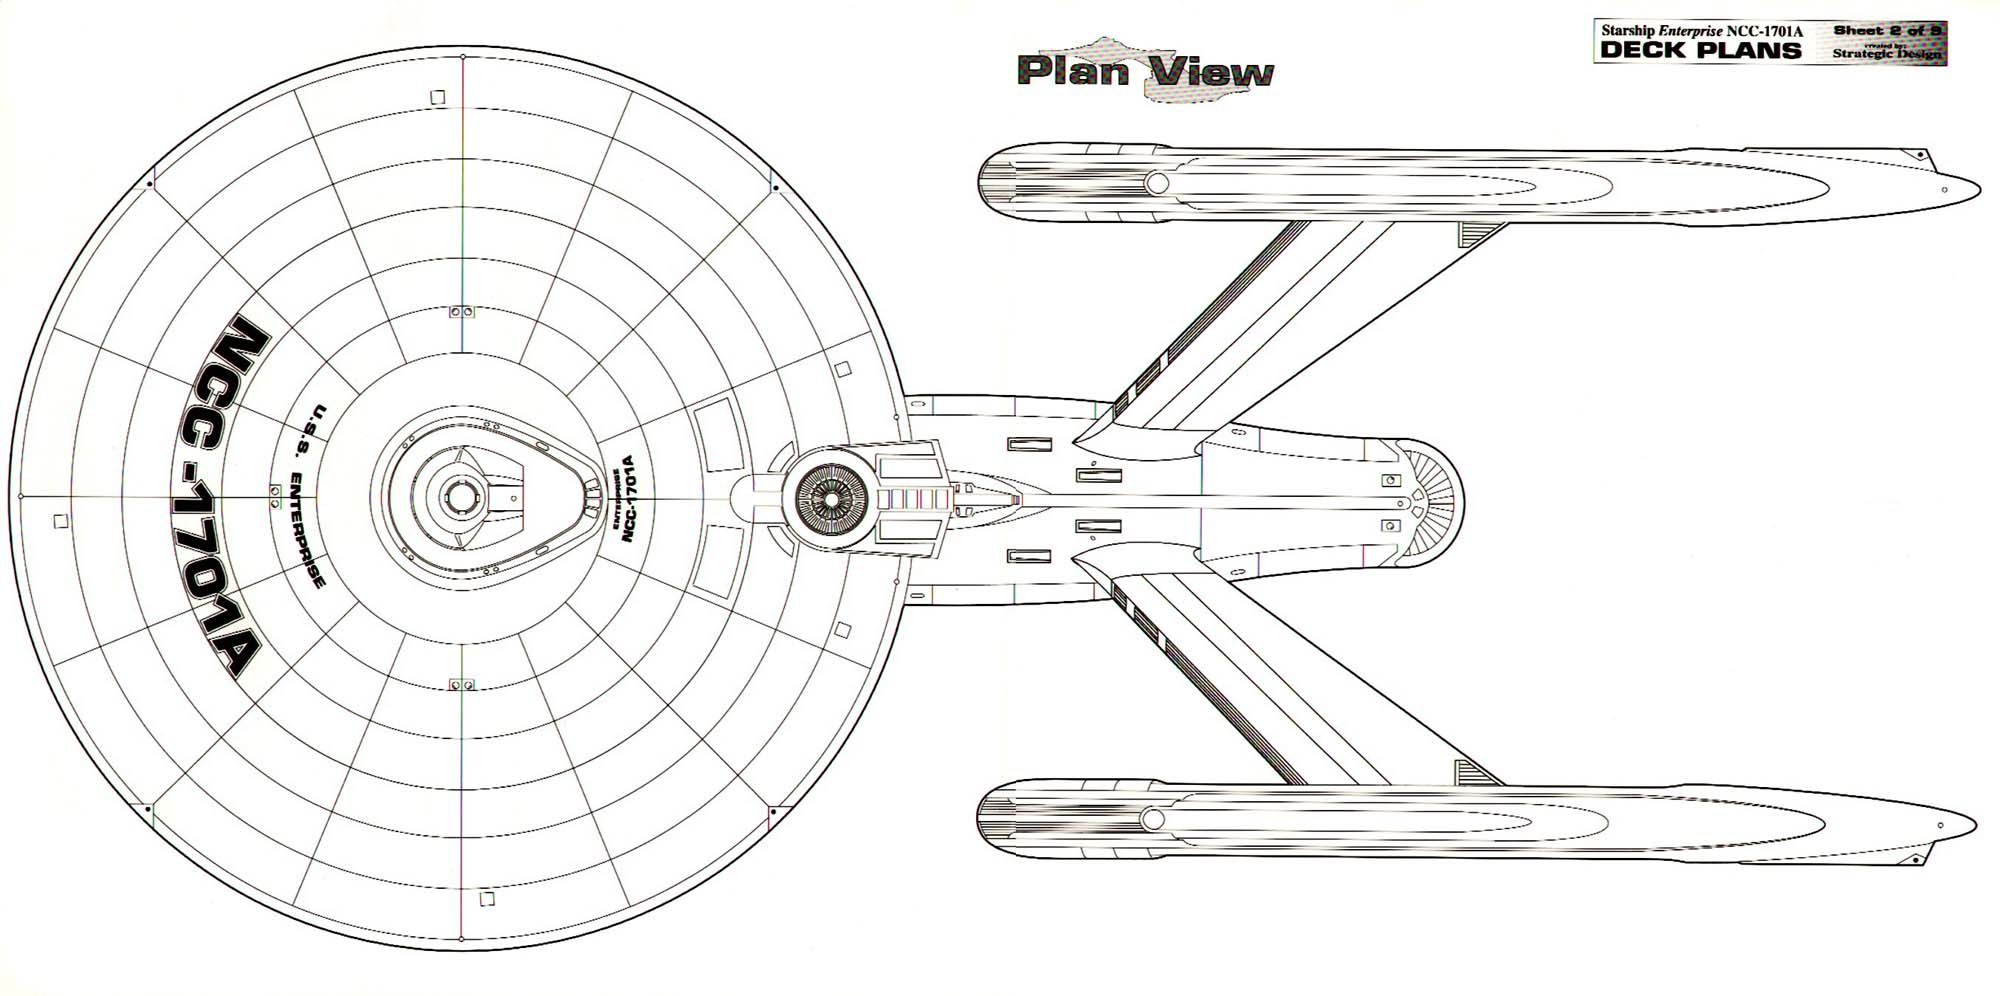 Navy Ship Coloring Pages Sketch Templates moreover Star Trek At 50 Uss Enterprise Ncc 1701 28 in addition  also Star Trek 104 together with Star Trek Ship Clipart. on uss enterprise coloring pages